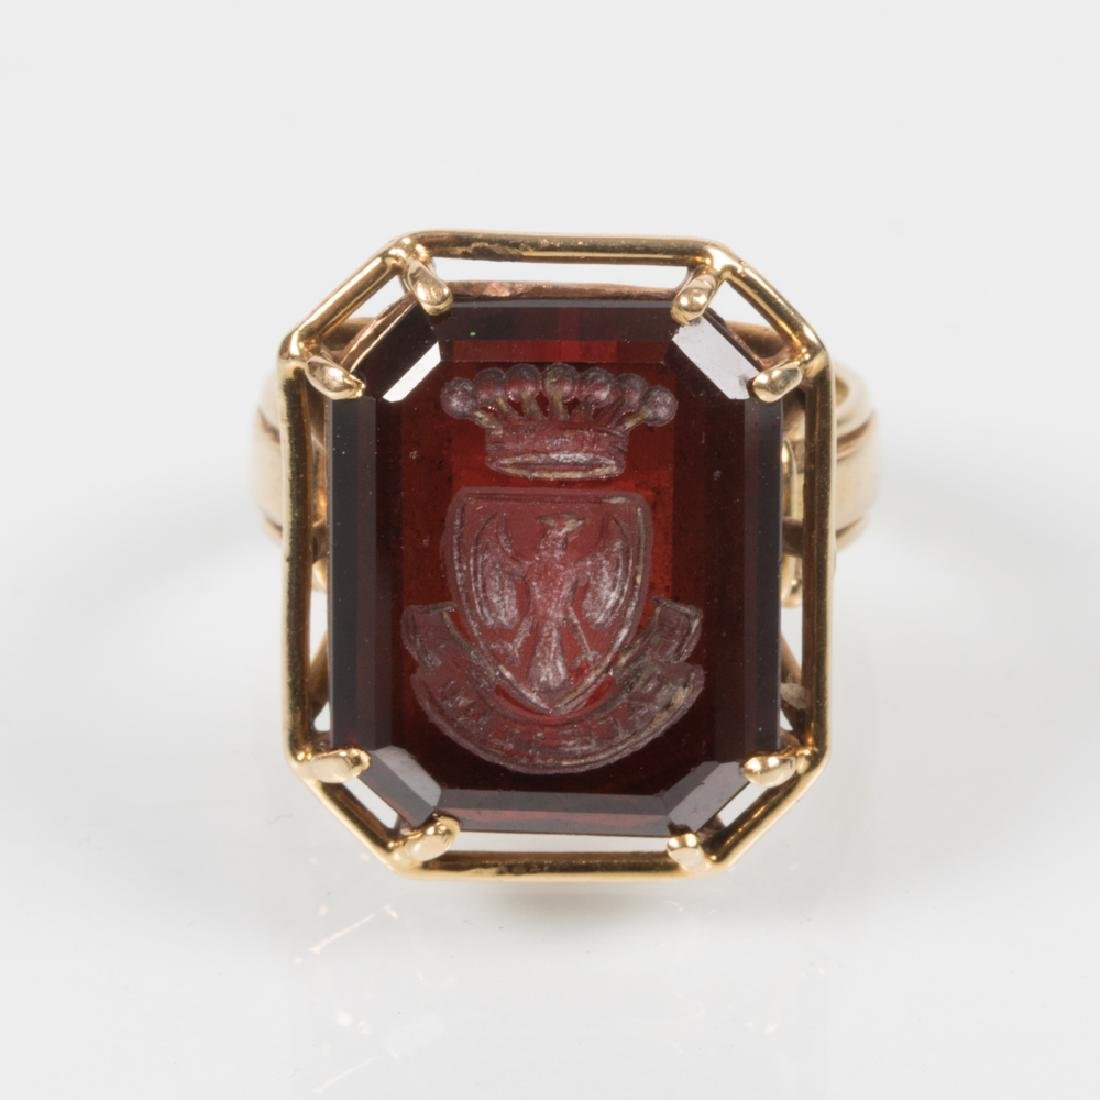 An 18kt. Yellow Gold and Carved Garnet Signet Ring.